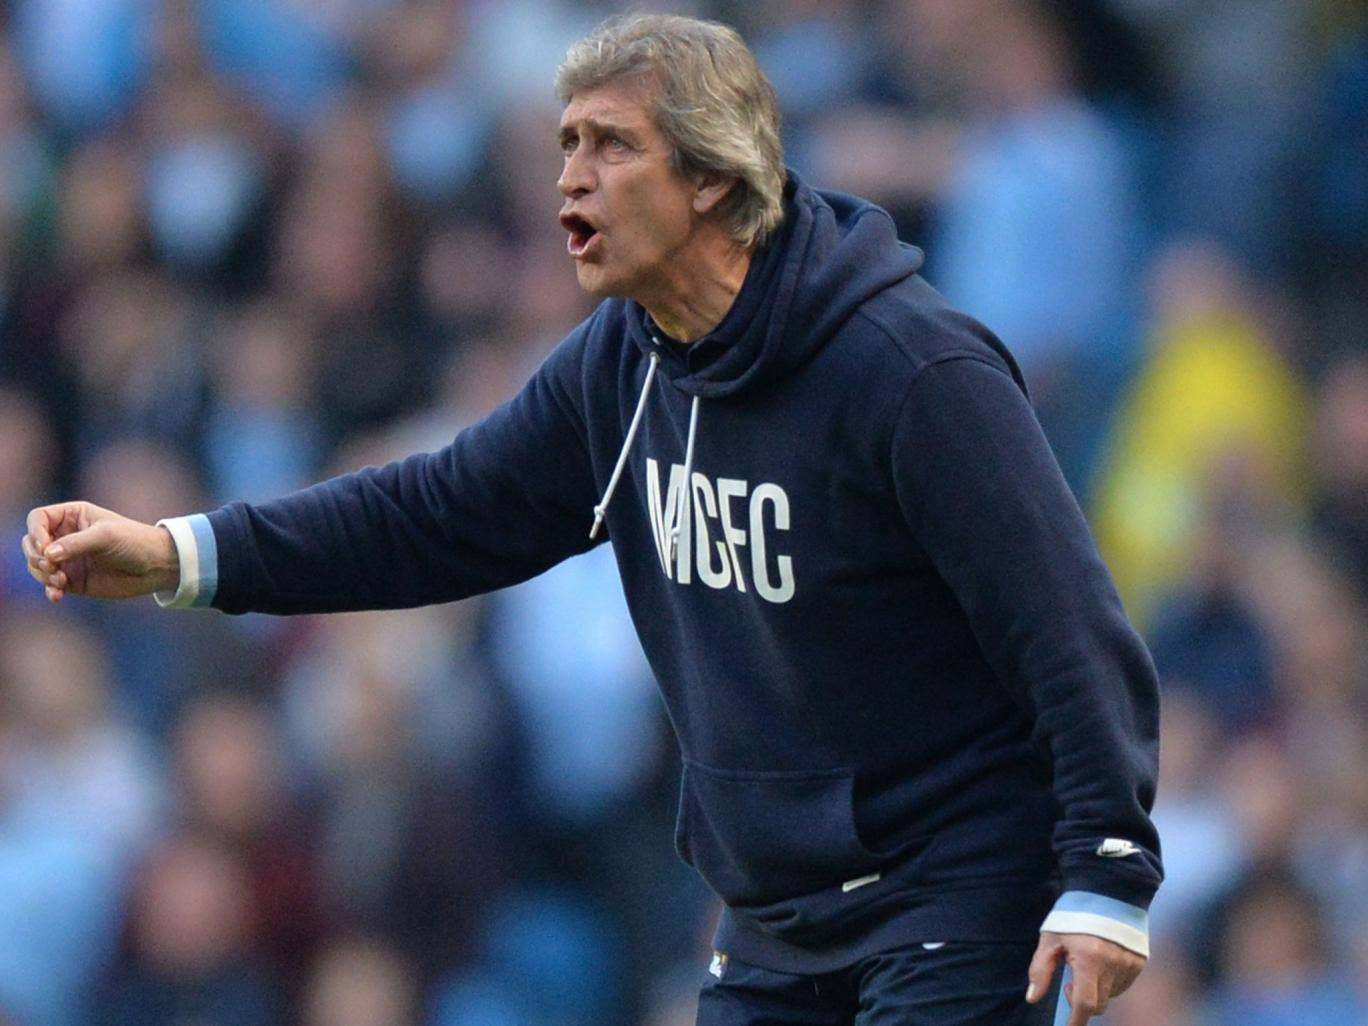 Manuel Pellergini makes a gesture from the touchline on Sunday